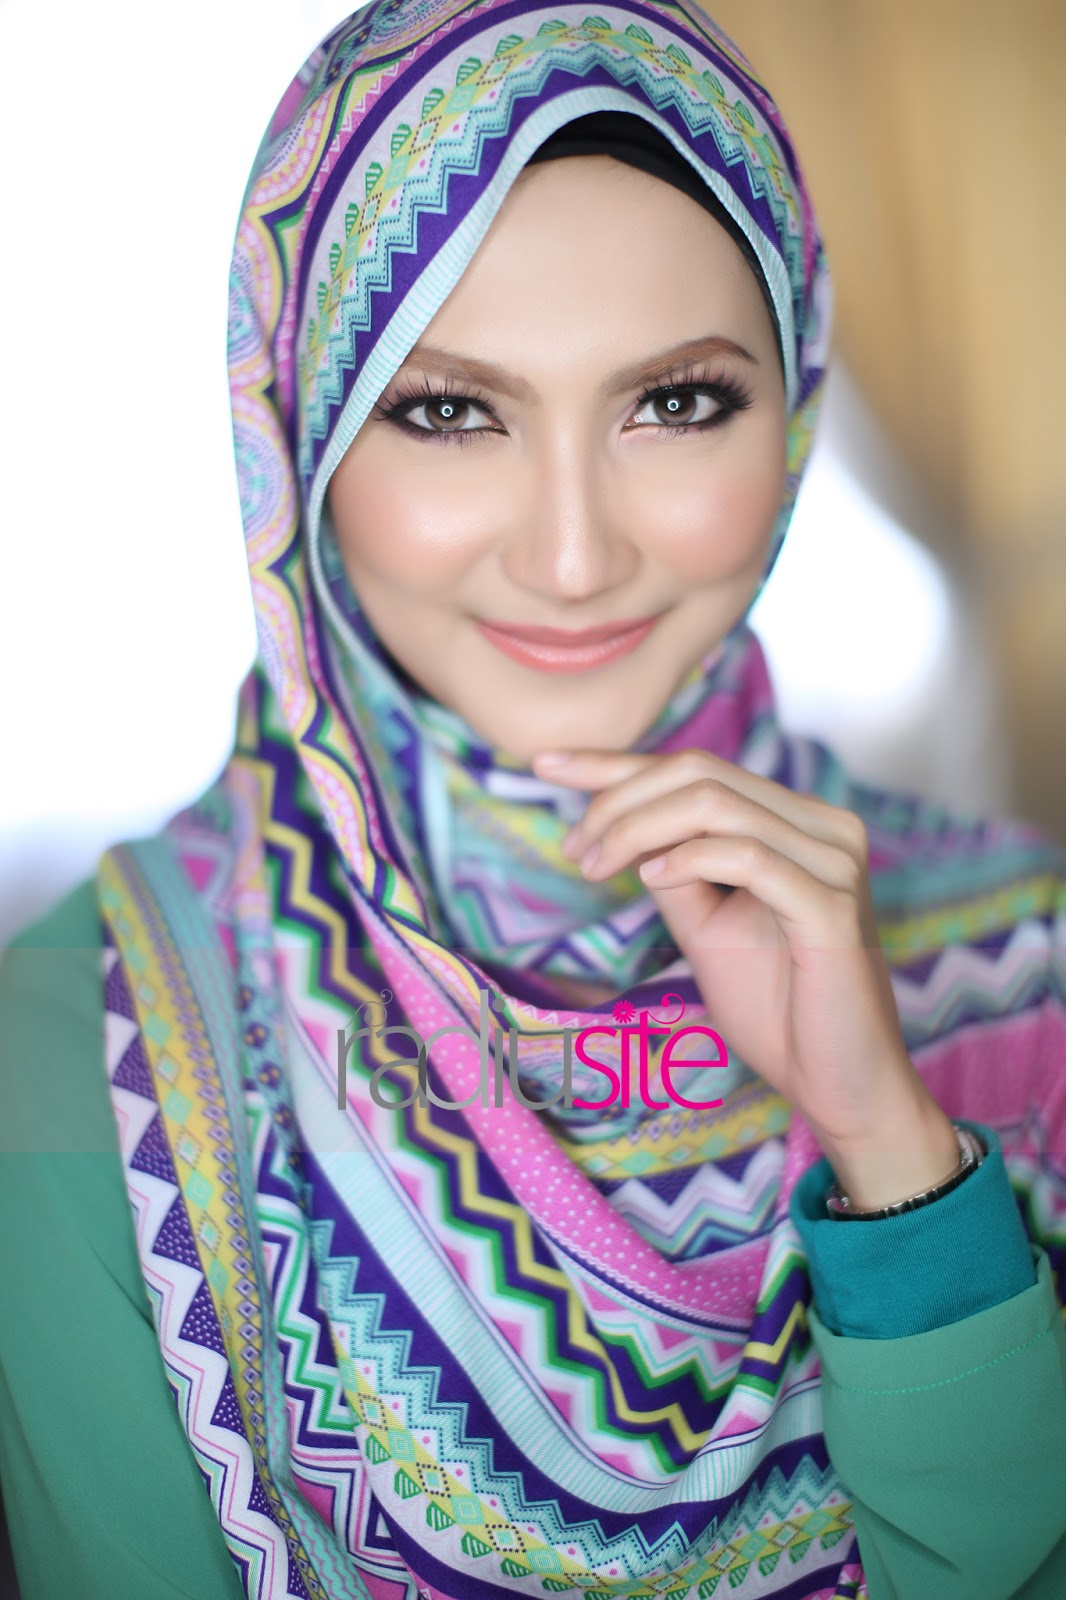 Radiusite Shawl http://www.radiusite.com/2013/03/tomorrow-shawl-adra-3-march-2013-11-am.html